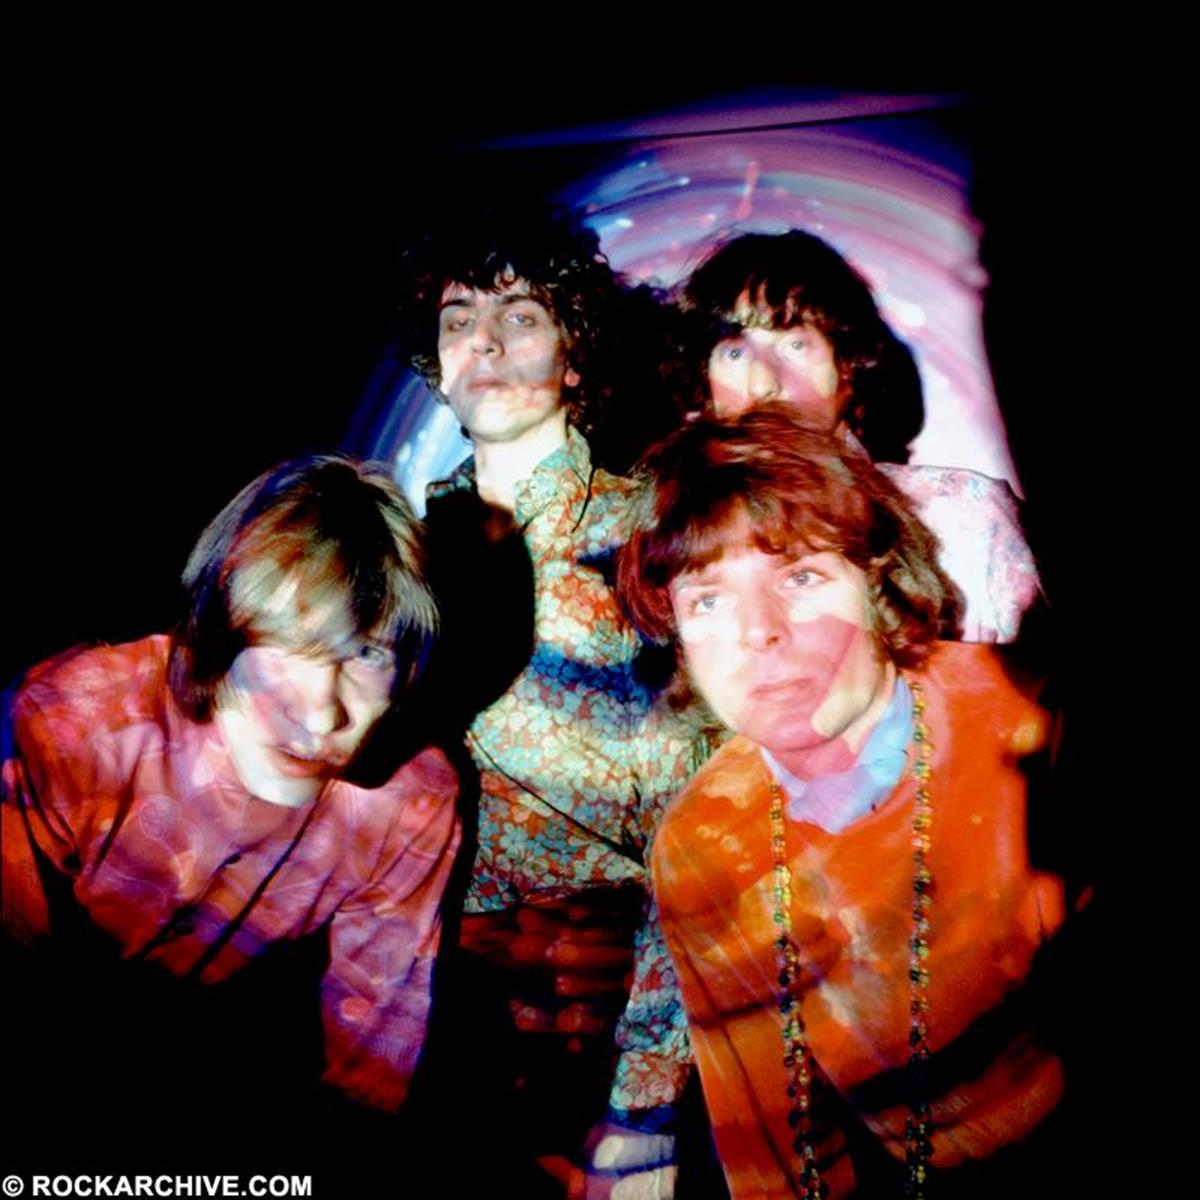 Pink Floyd in an early shoot in 1967. This image was used in the Pink Floyd V&A exhibition 'Their Mortal Remains'. © Andrew Whittuck